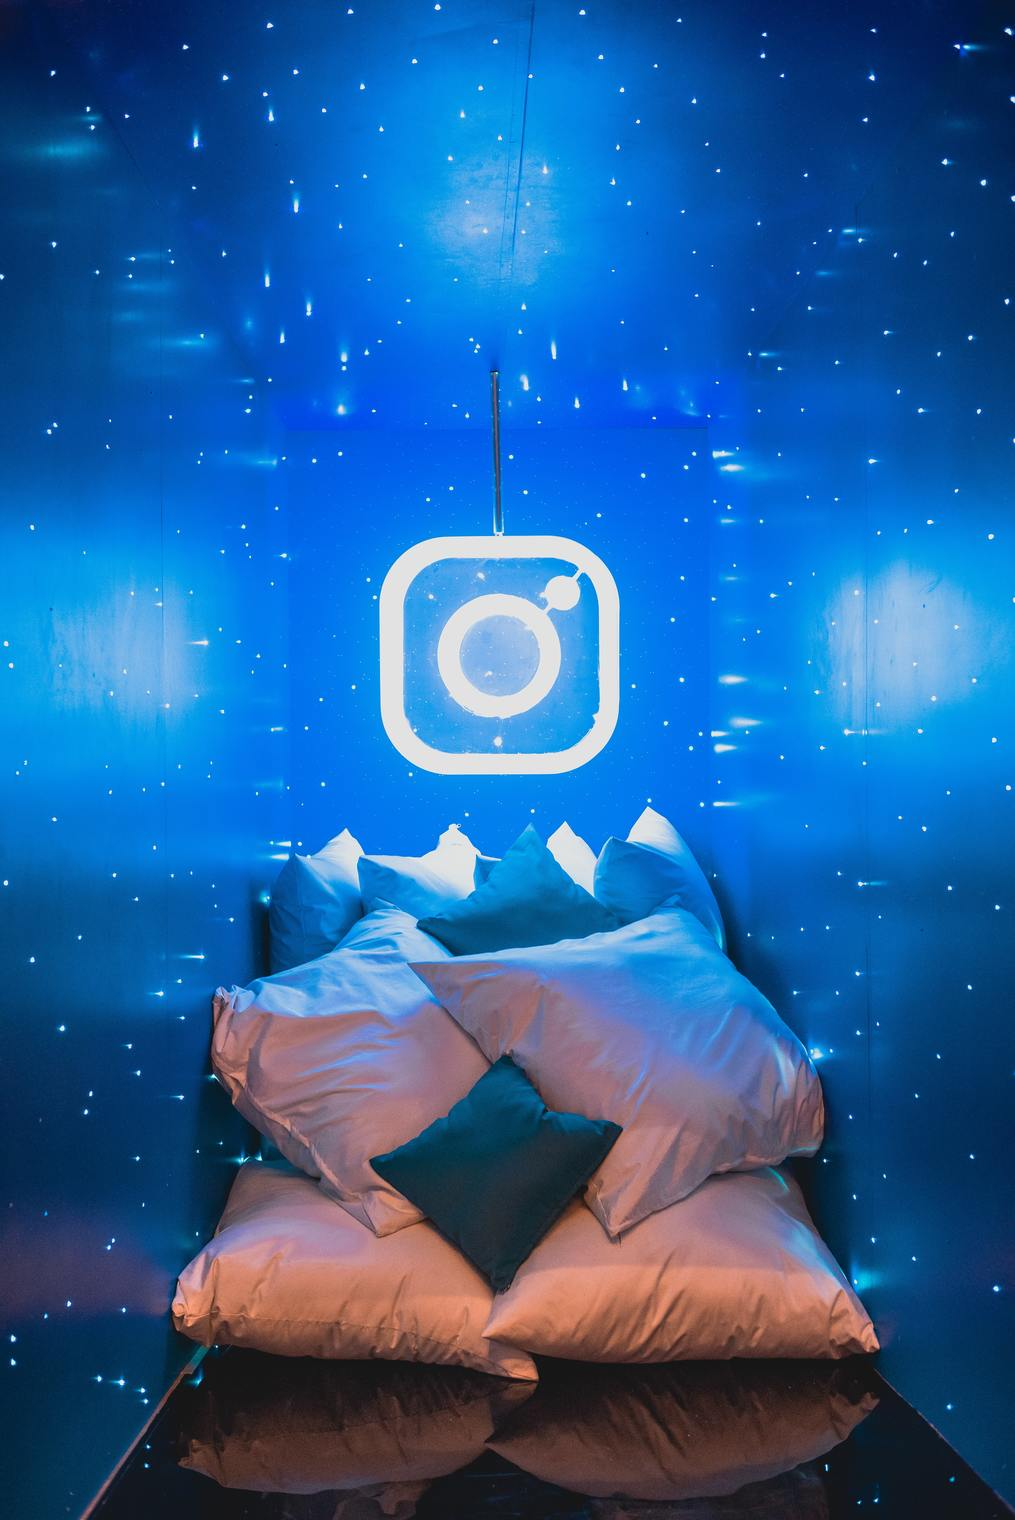 Blue-room-Instagram-Stories-for-Writers-susan-shiney-instagram-logo-in-a-blue-room-instagram-stories-for-authors